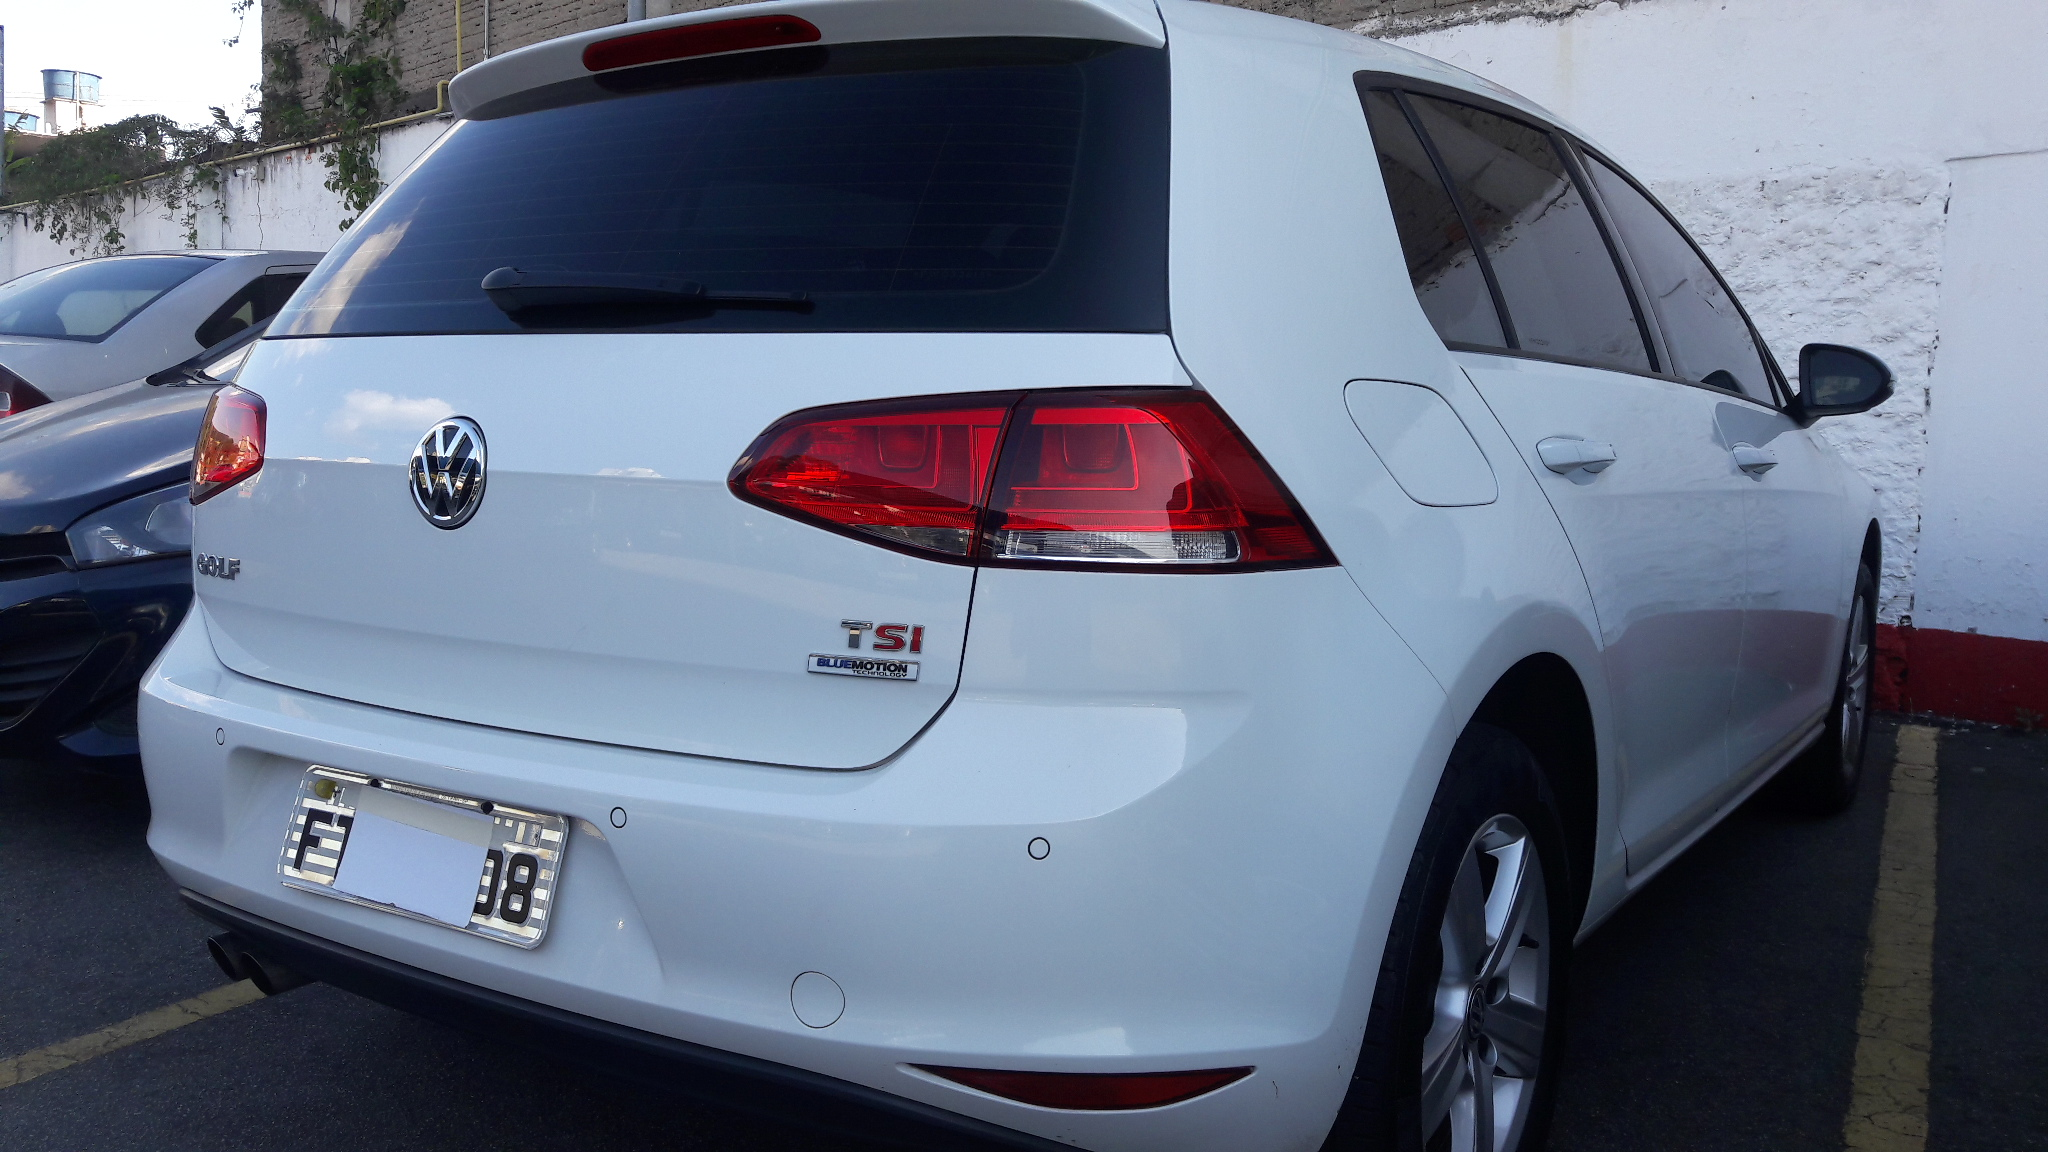 À VENDA: VW Golf alemão 2014/2015